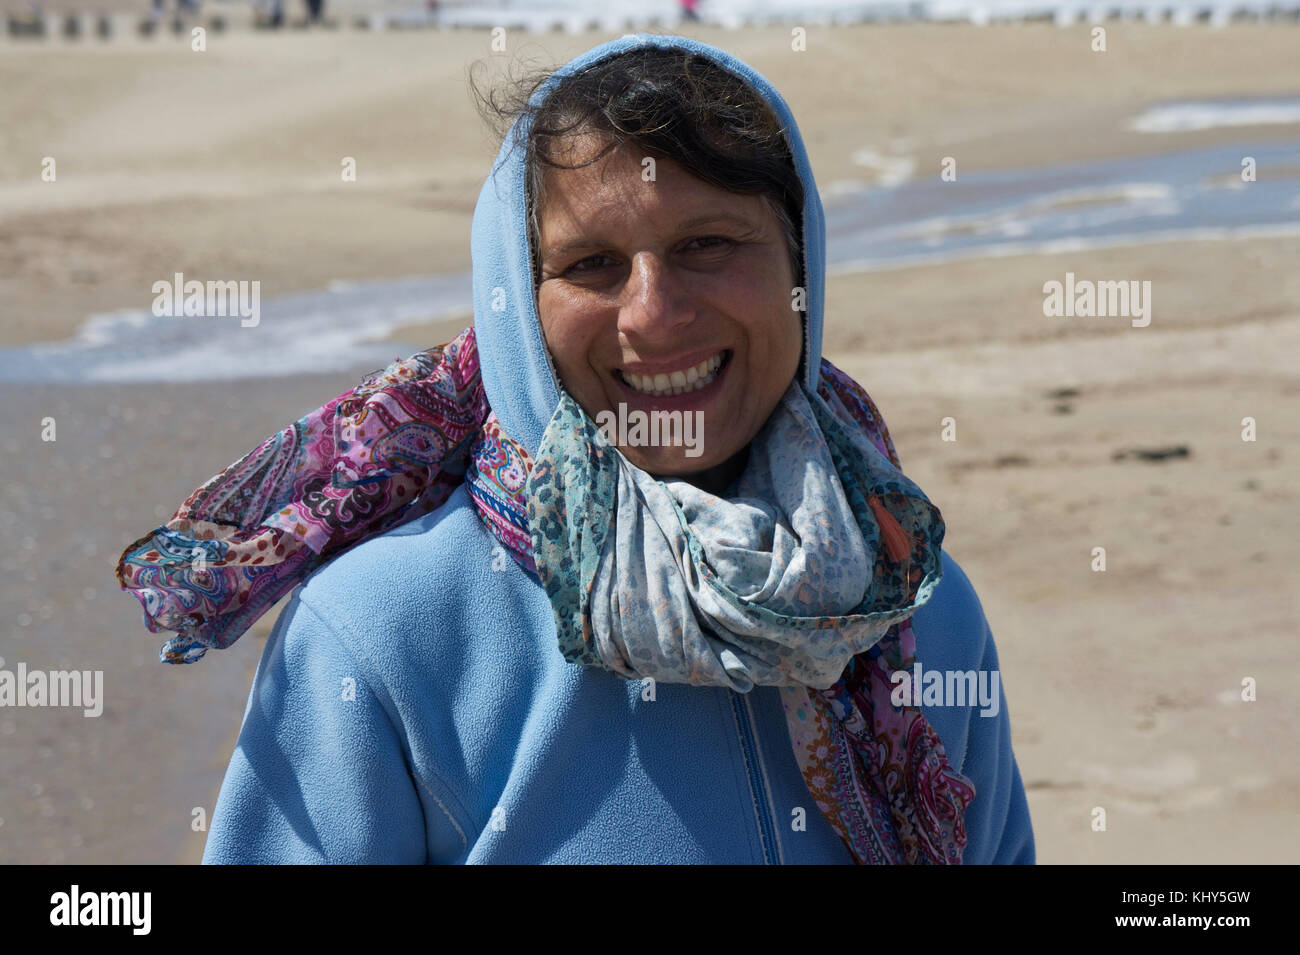 Portrait of a german woman wearing a scarf and cap on the beach during a wind walk. Woman laughing at the photographer. - Stock Image